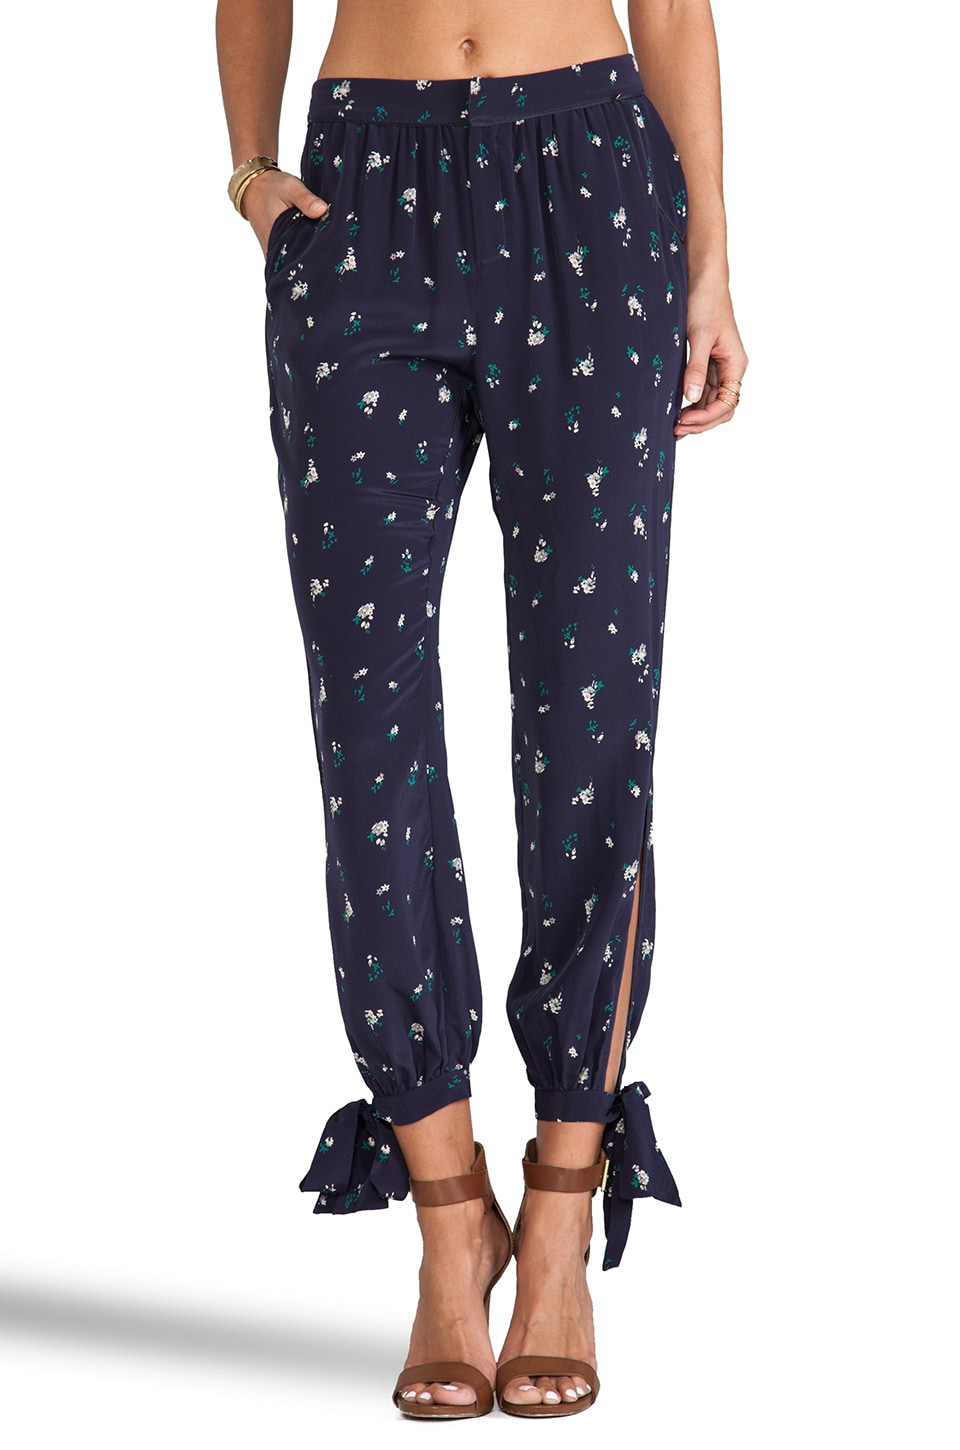 harlyn Open Tie Trouser in Navy Floral